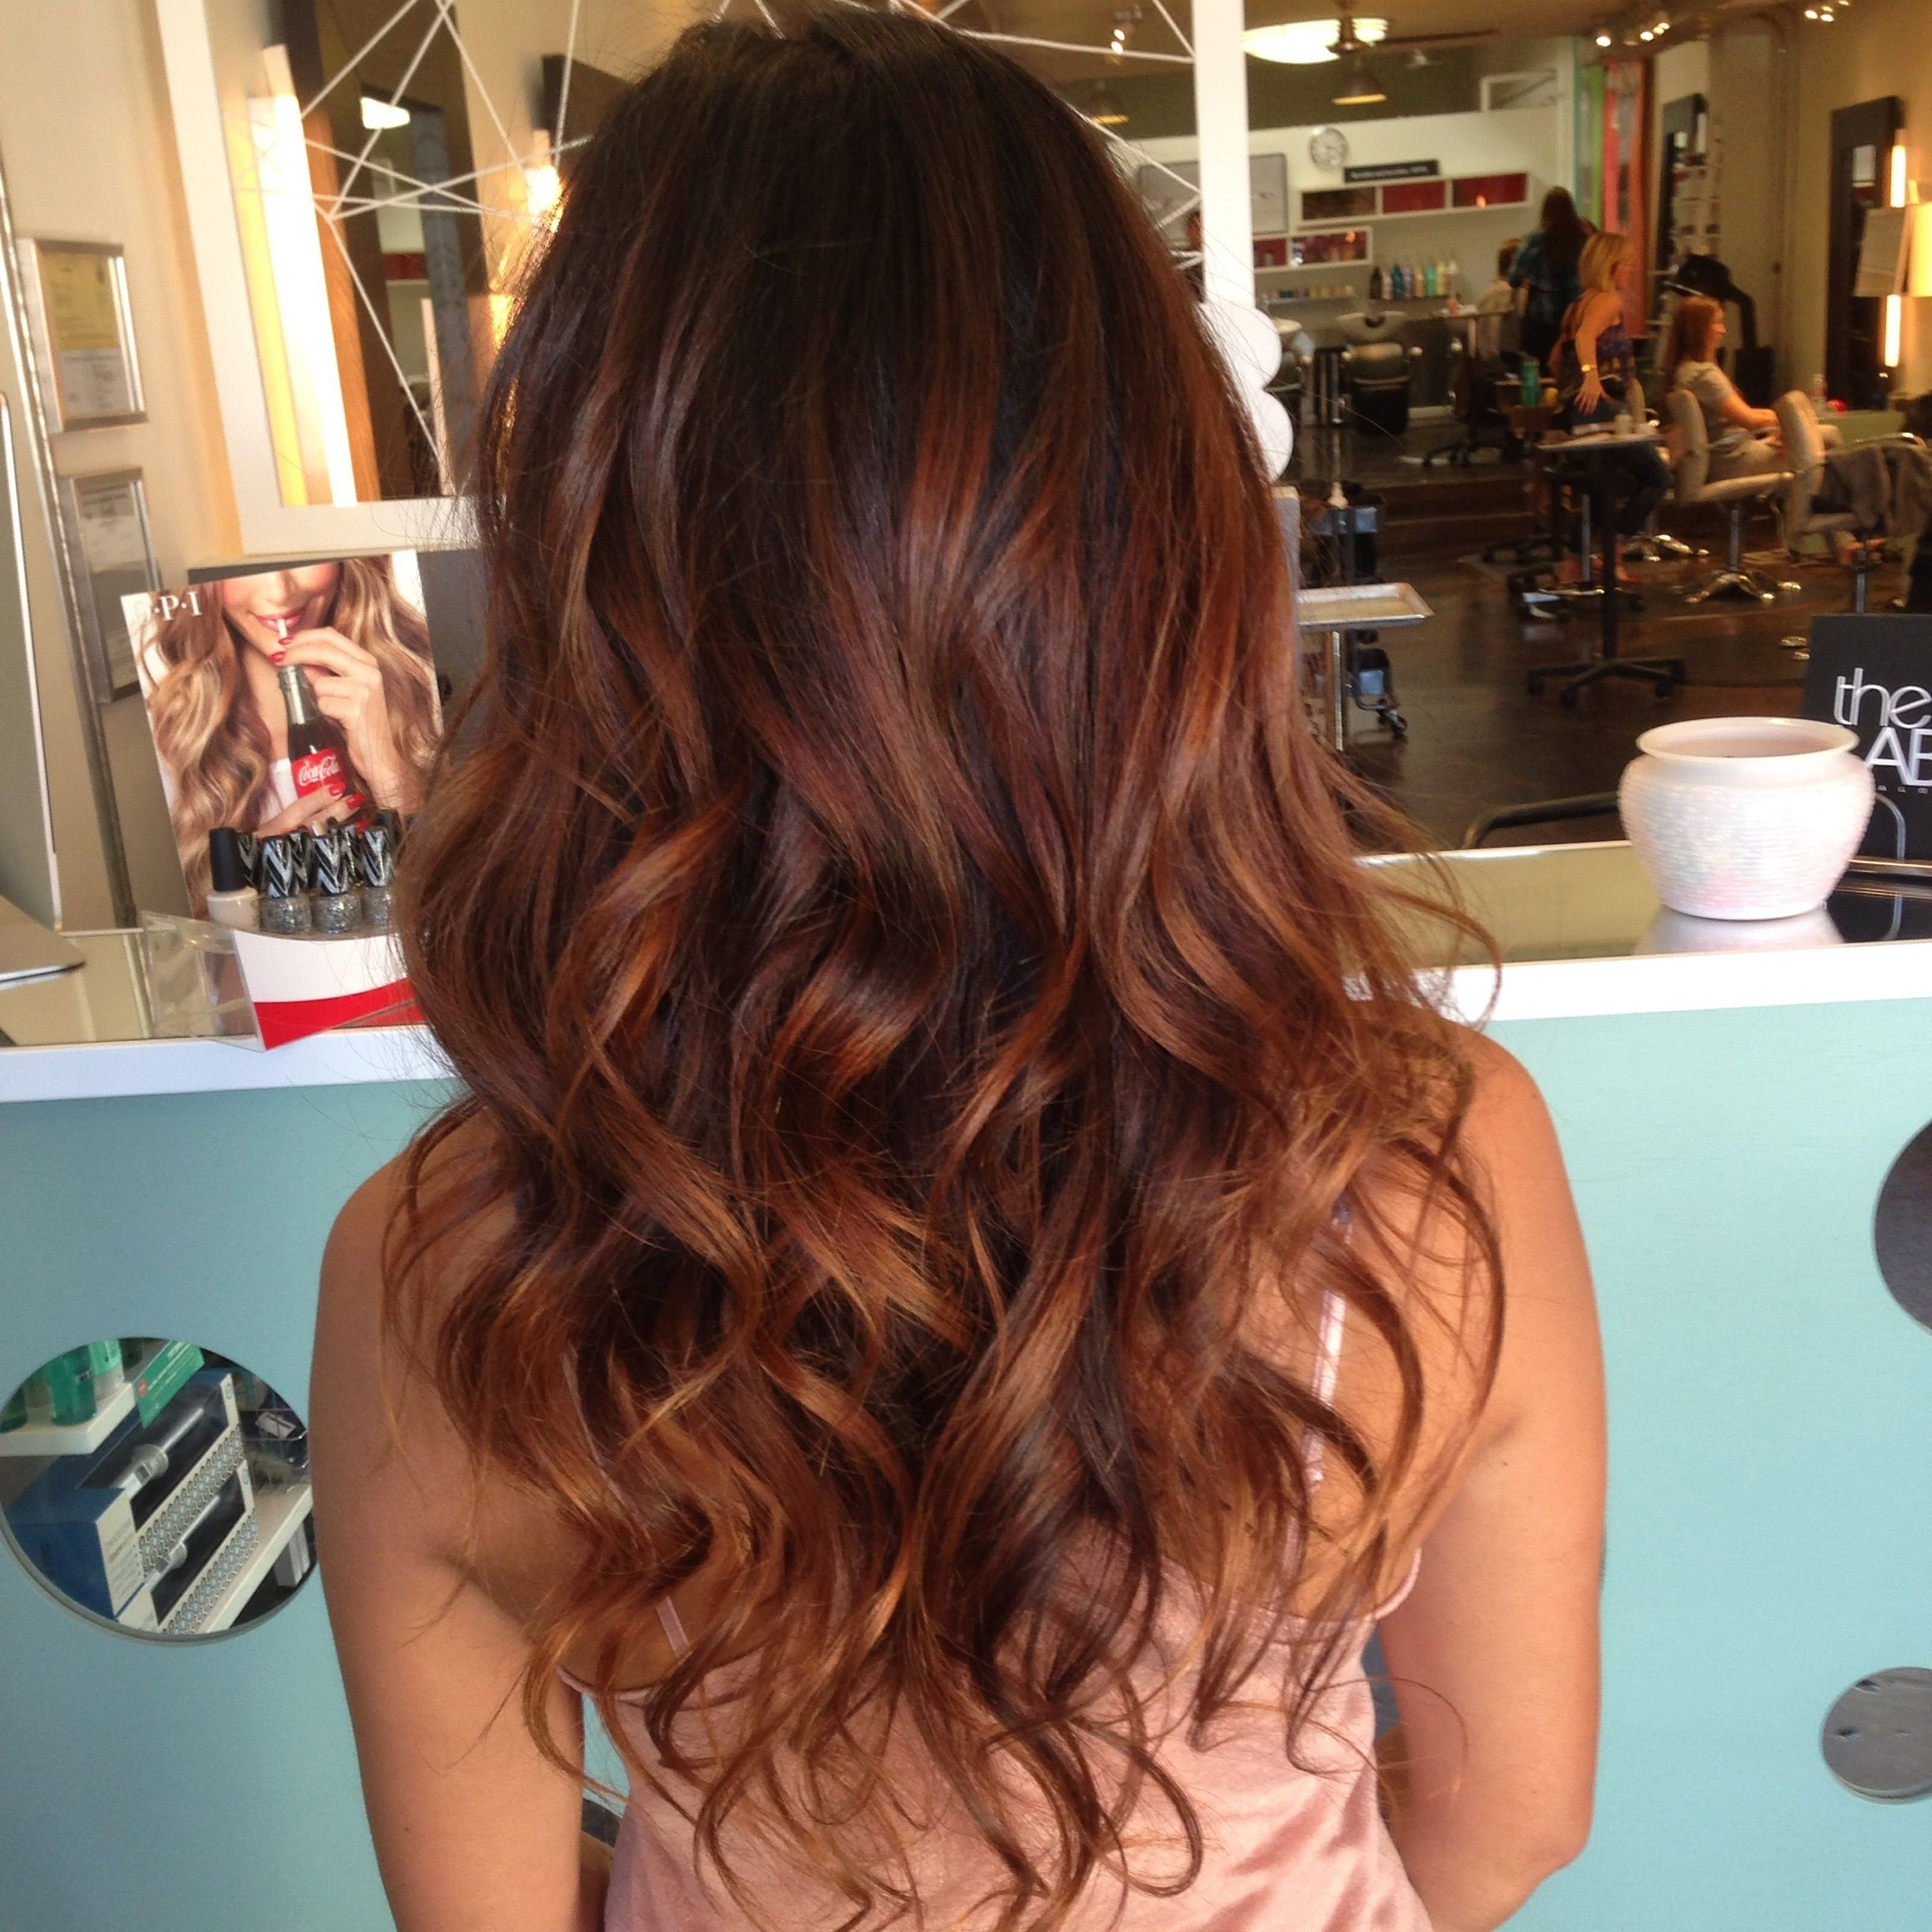 Andreamillerhair.com San Diego balayage specialist, color ...